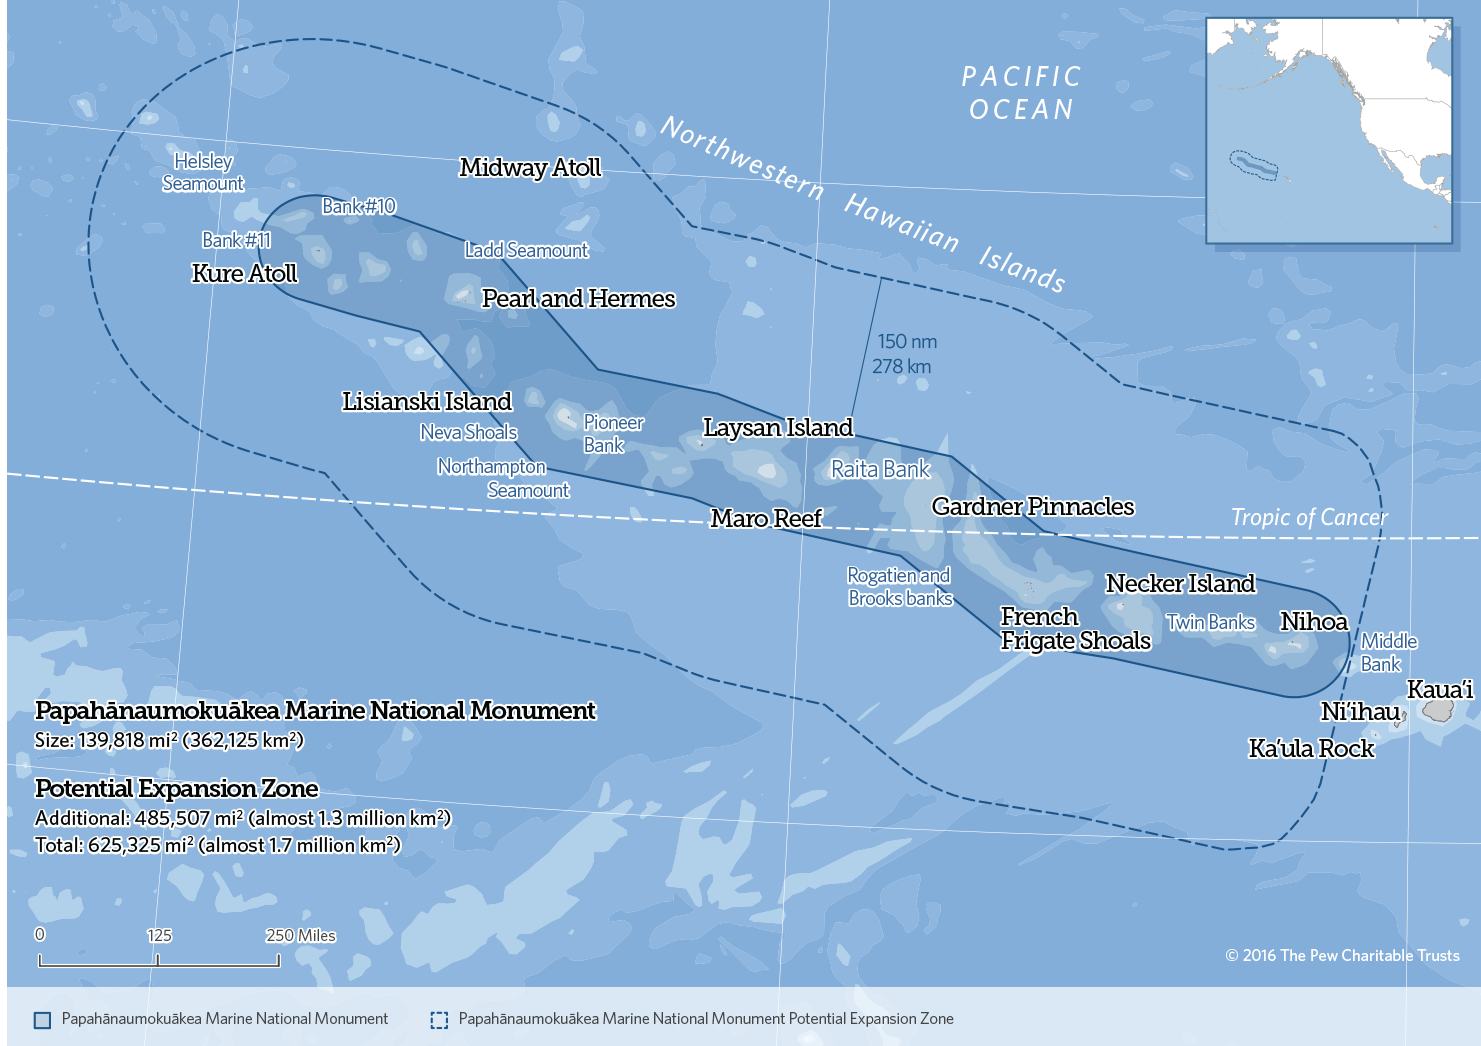 #MonumentMonday: Papahanaumokuakea Marine National Monument